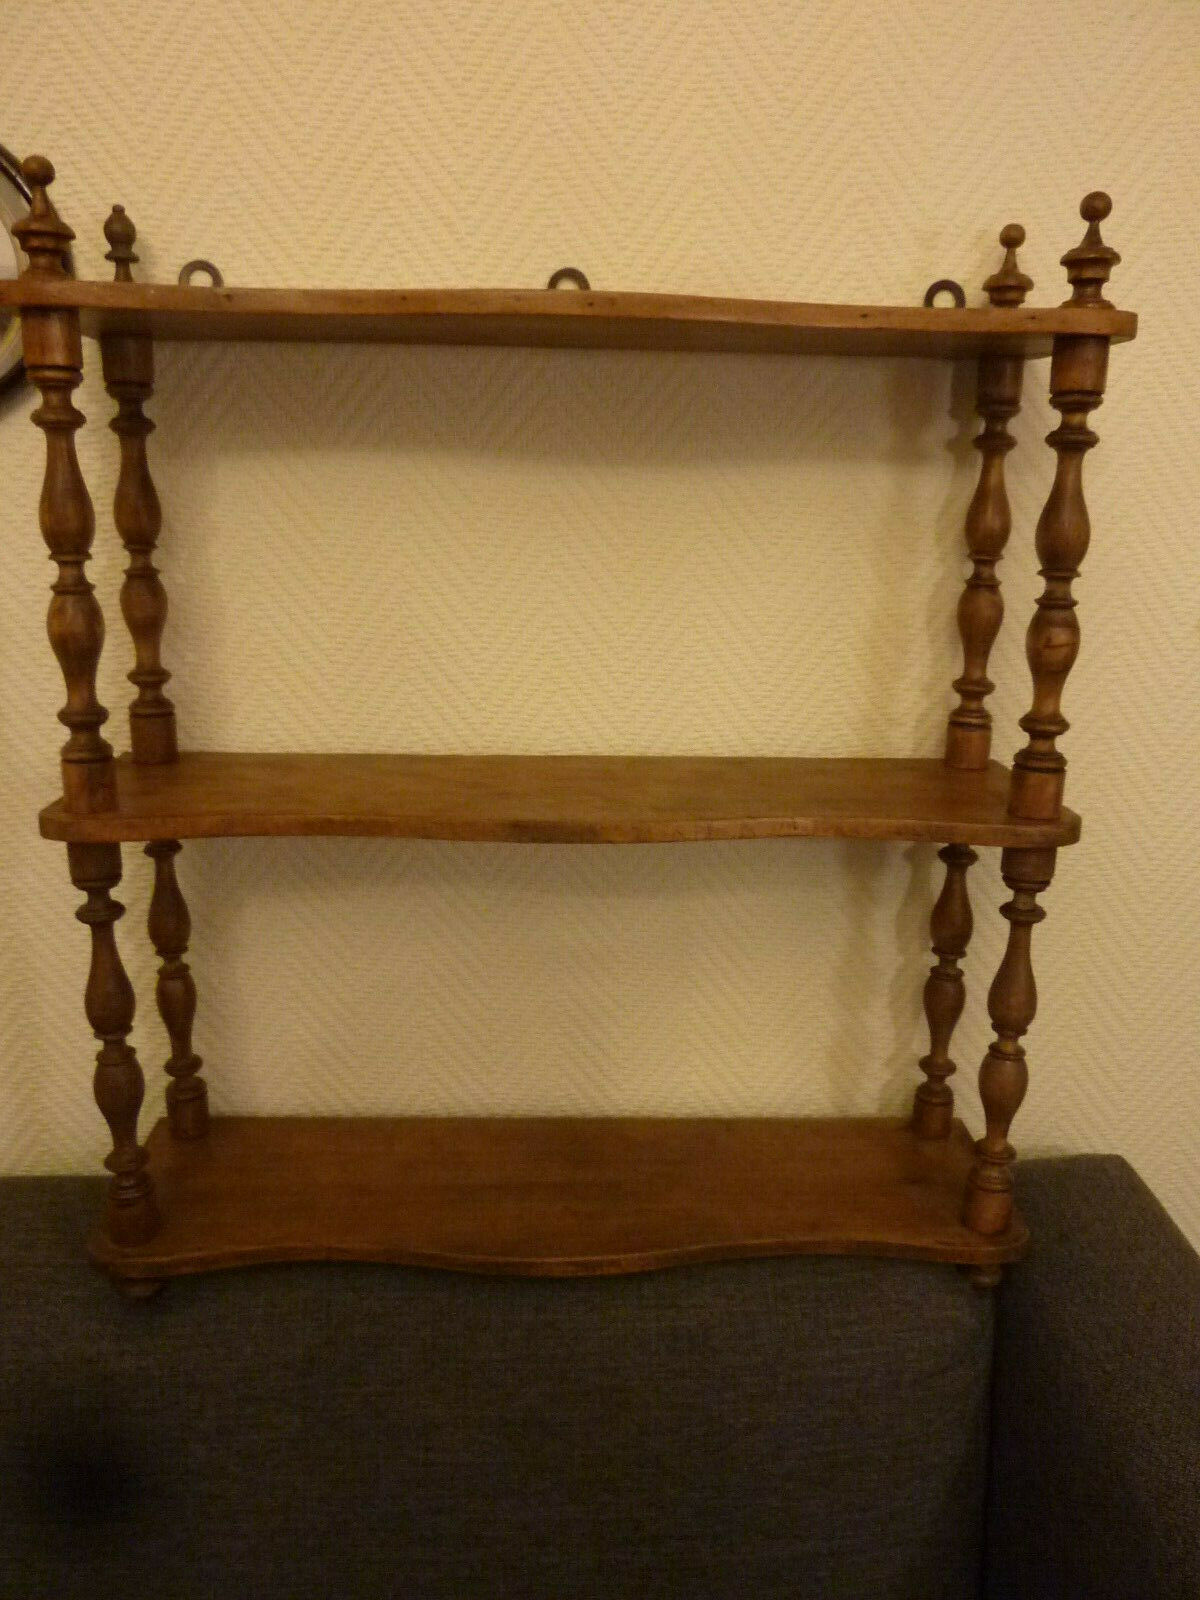 Regal Etagere Bucherregal Grunderzeit Wandregal Antik